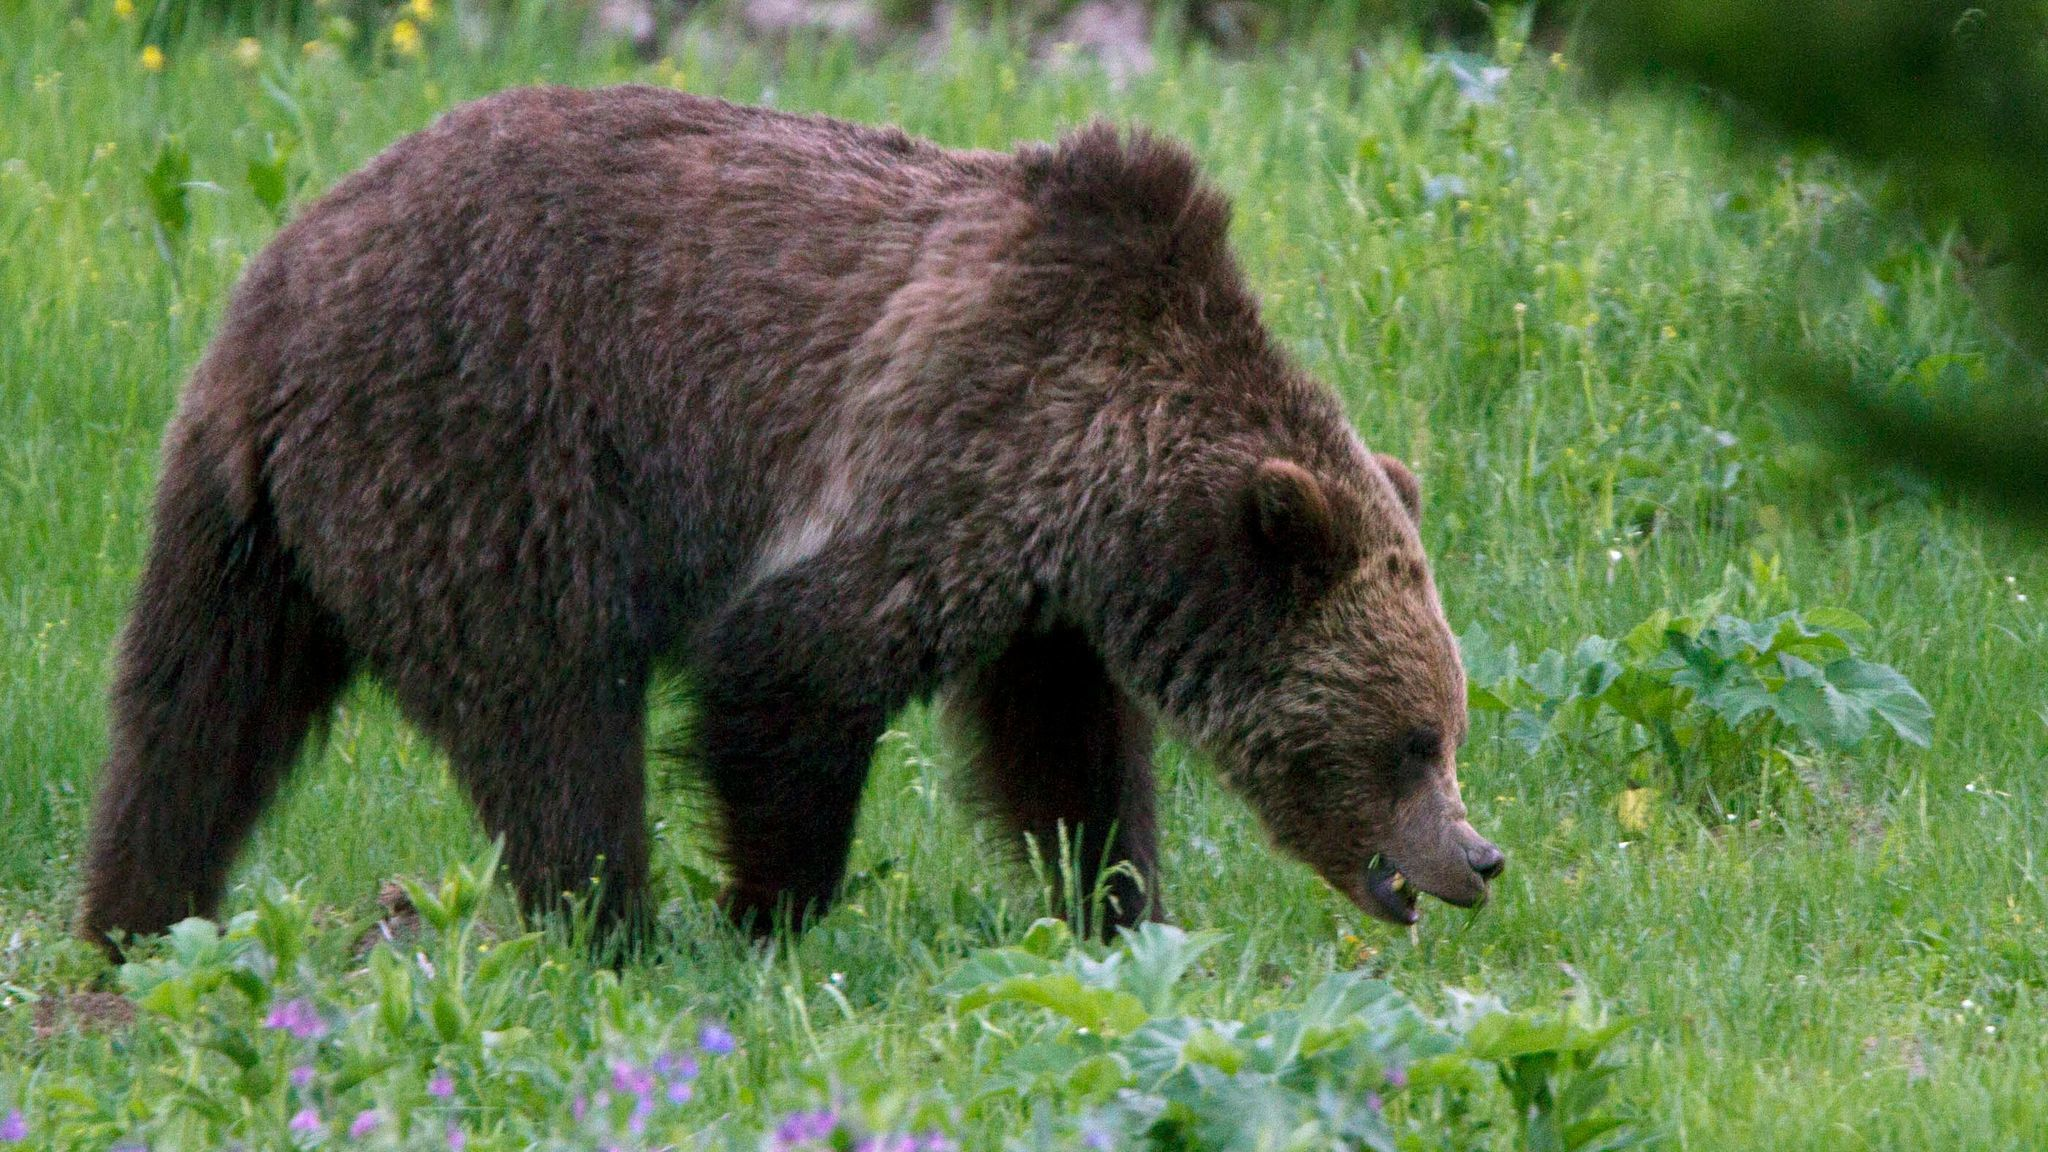 Conservationists, Indian tribes denounce U.S. plan to remove Yellowstone grizzly bears from endangered species list